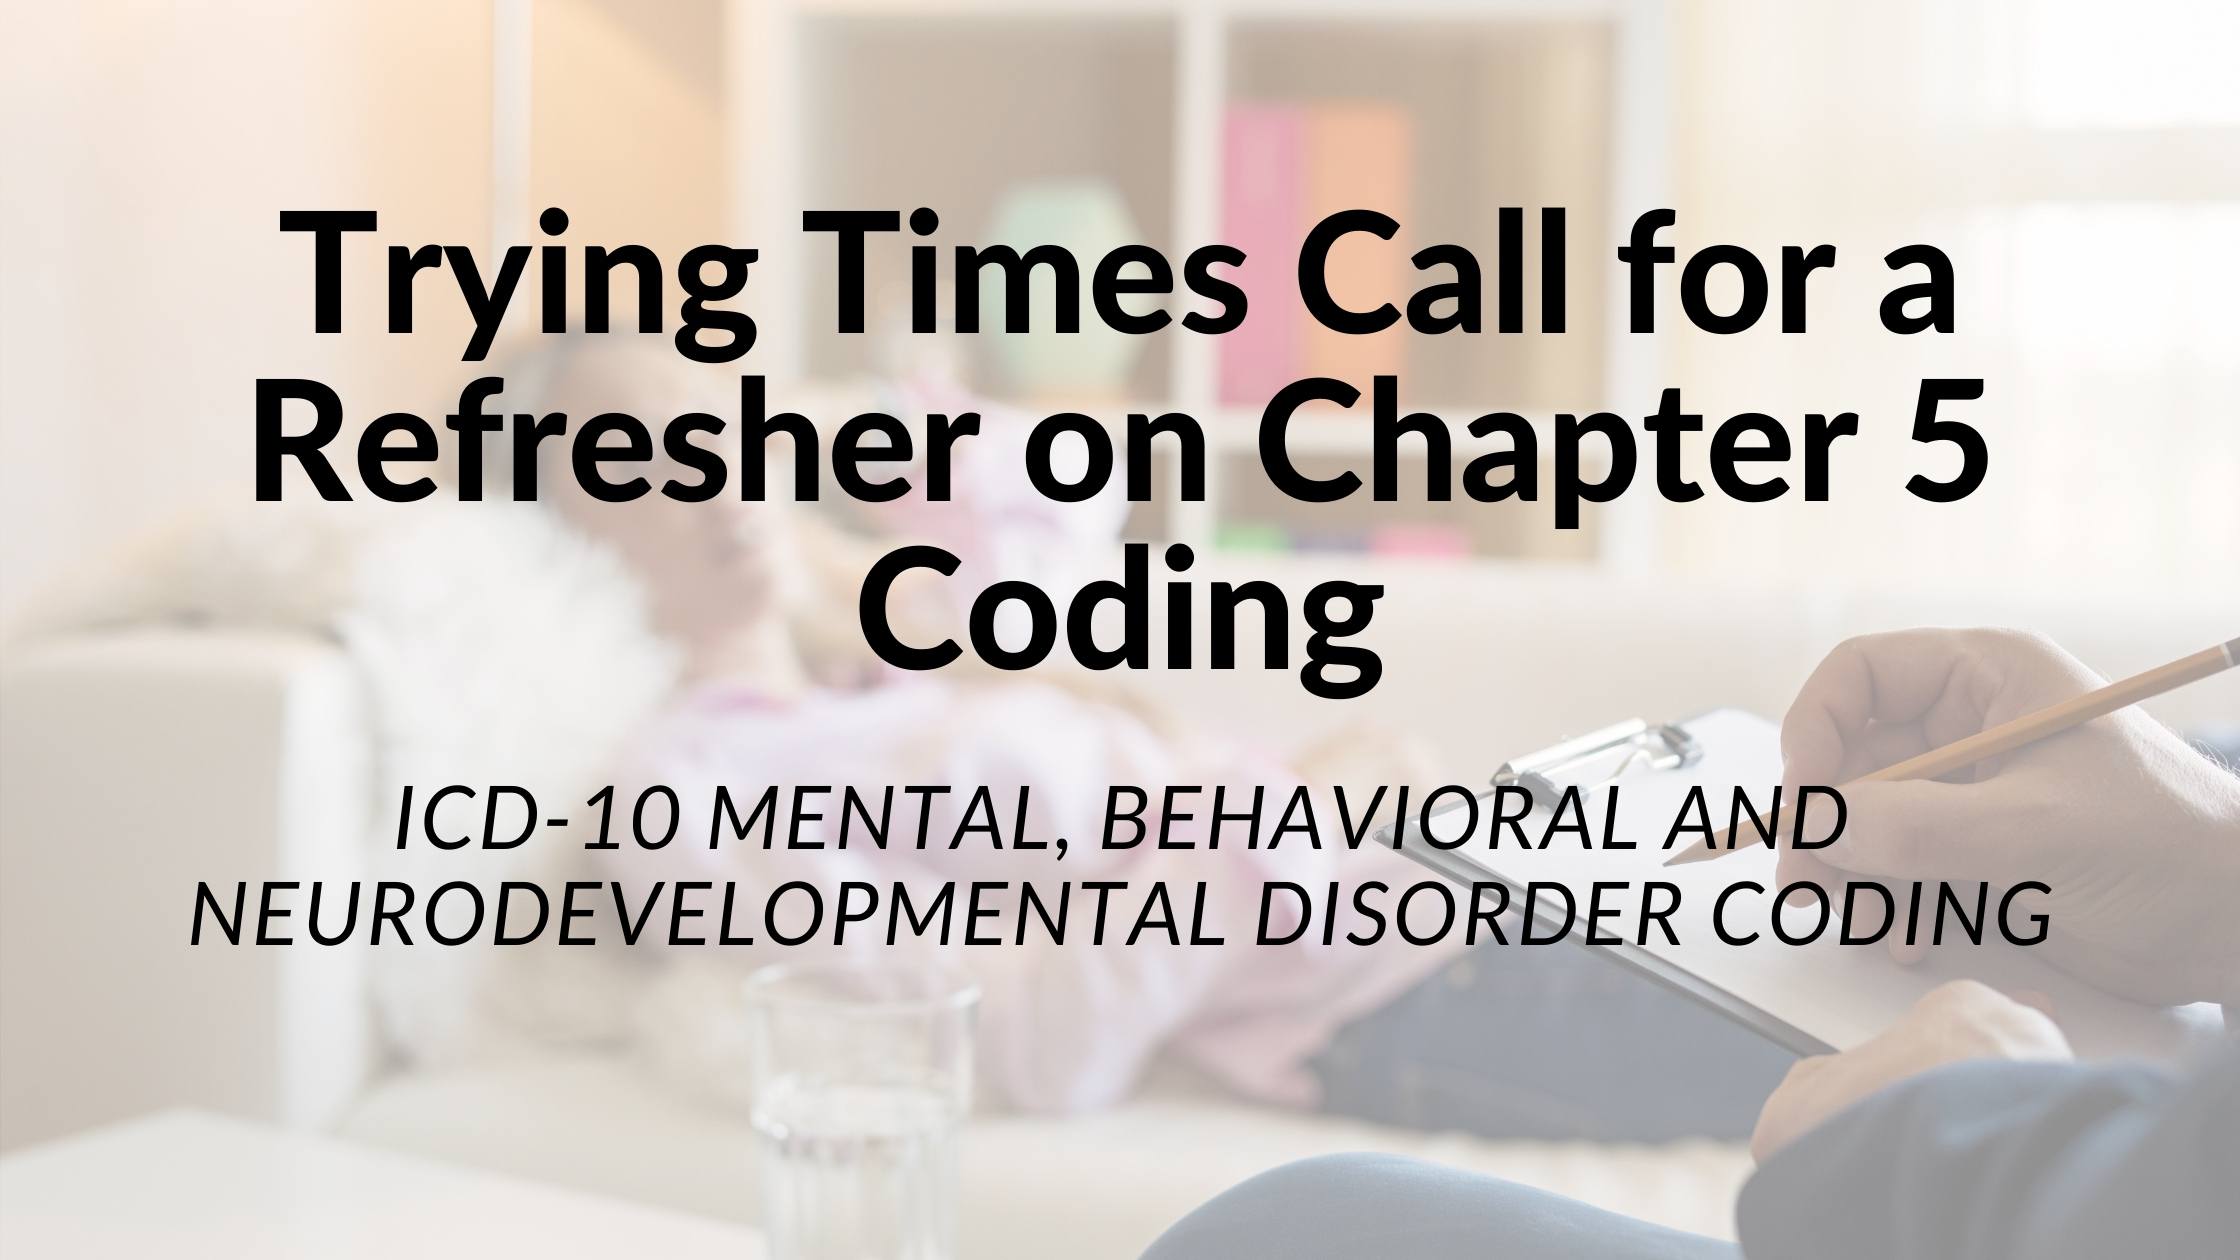 TRYING TIMES CALL FOR A REFRESHER ON CHAPTER 5 CODING